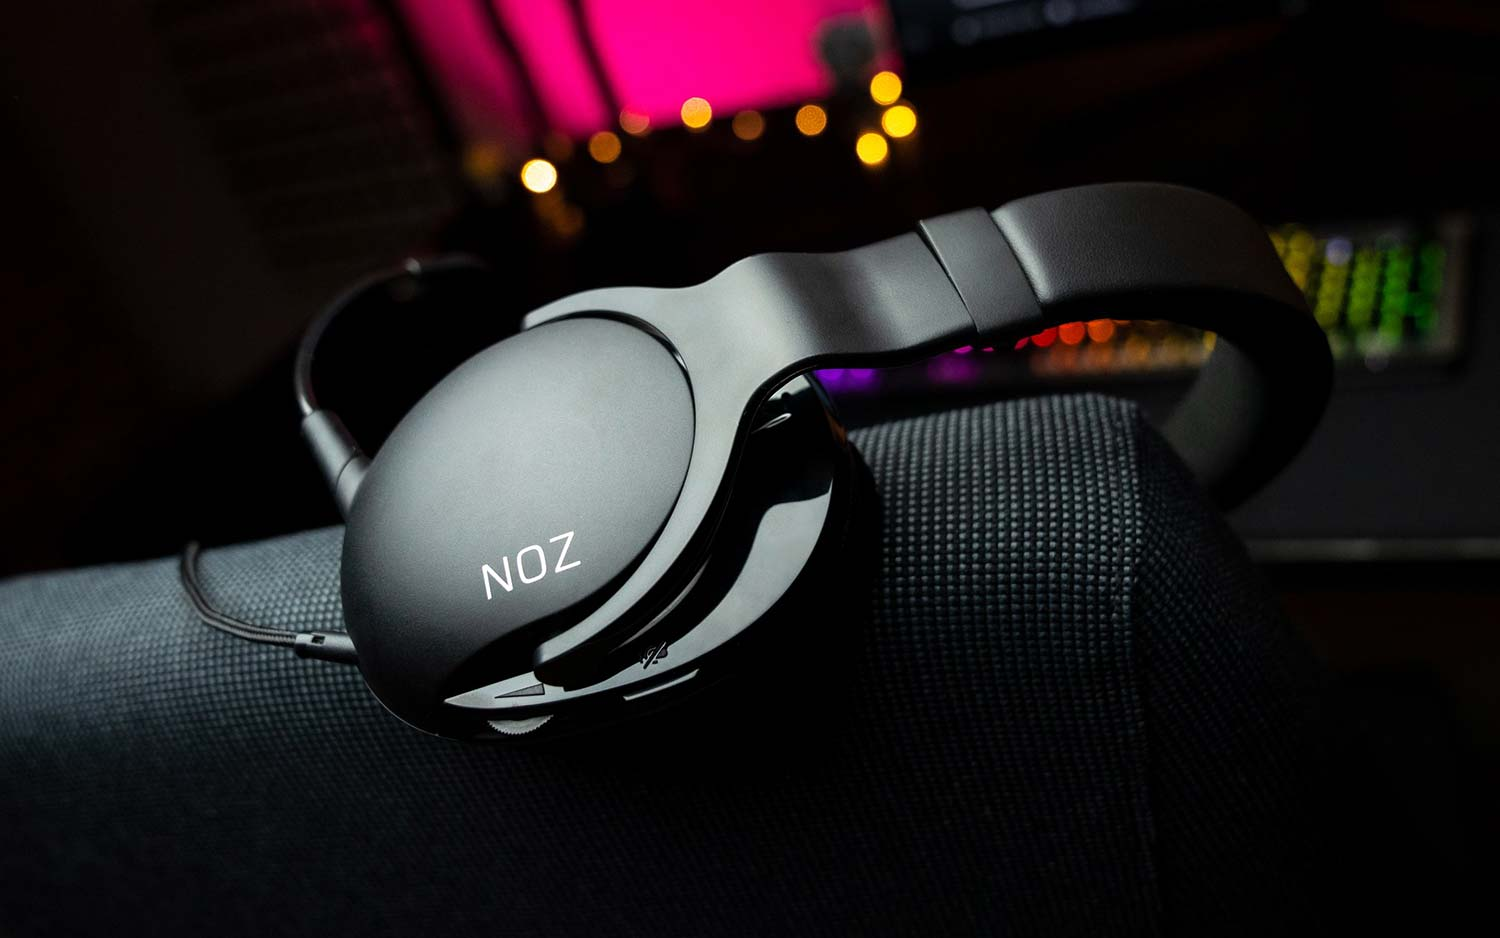 Roccat Noz Gaming Headset Review: Good Enough for the Price